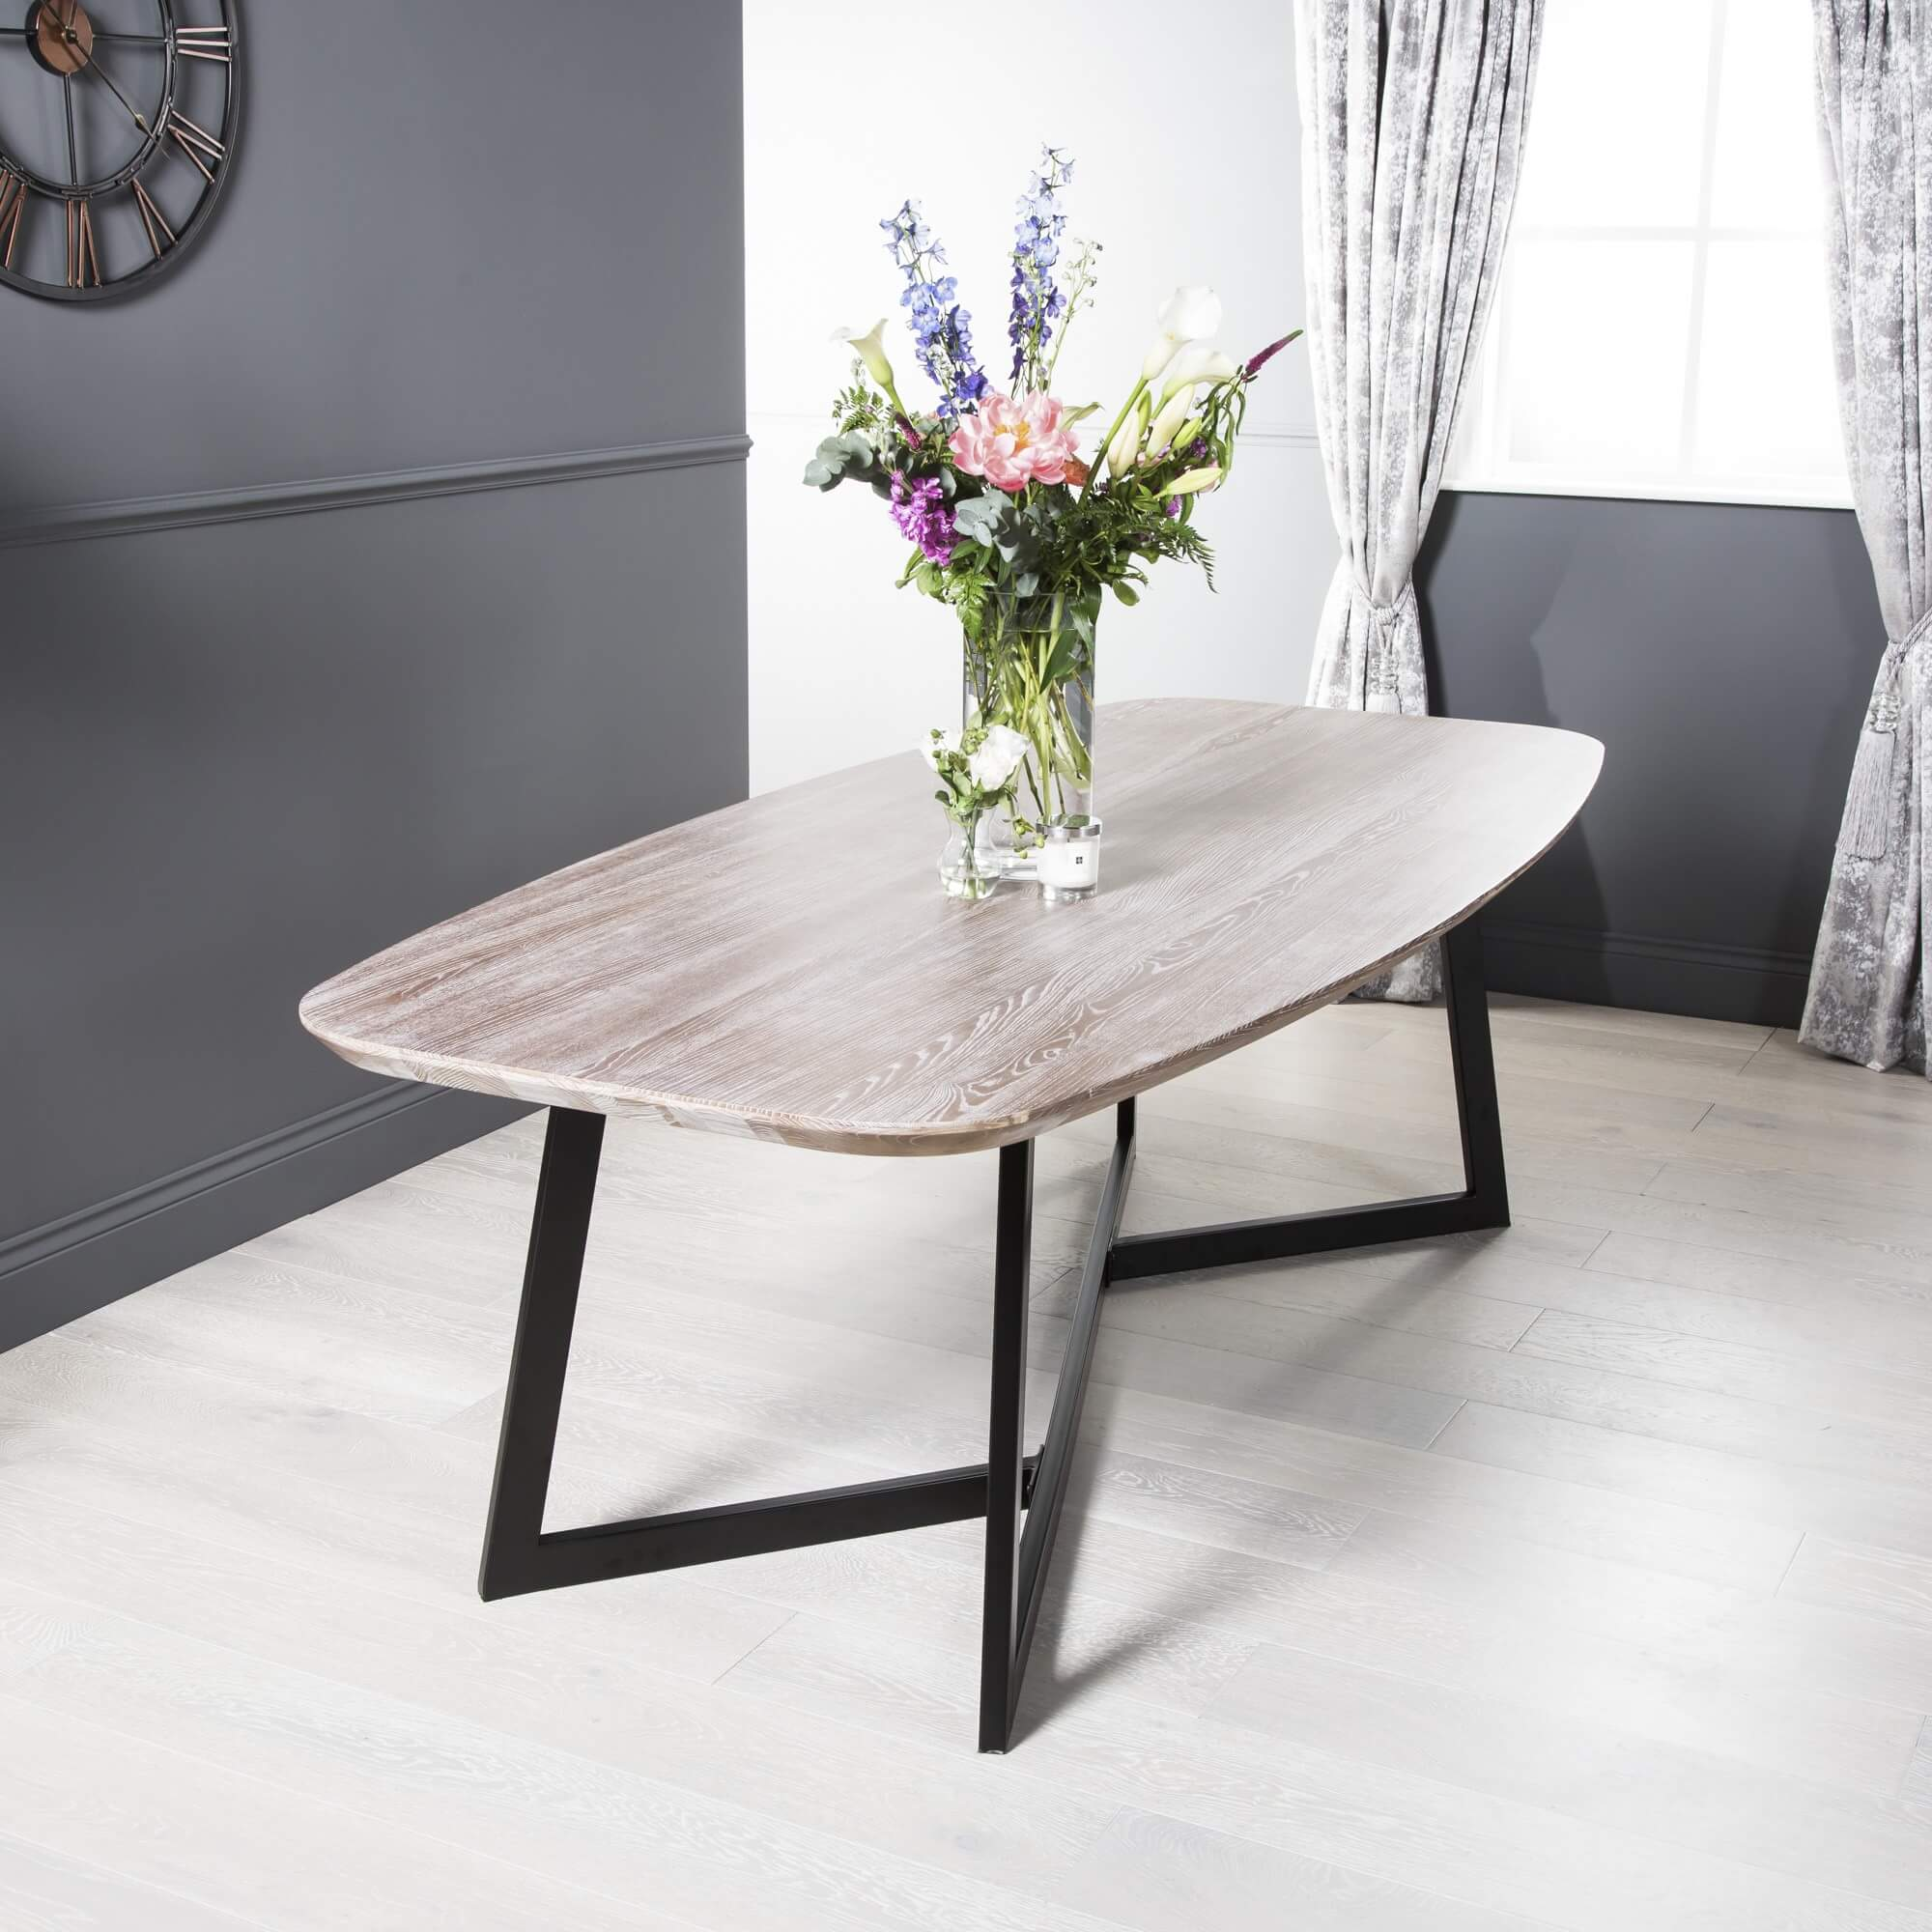 2.4m Industrial Ash Dining Table